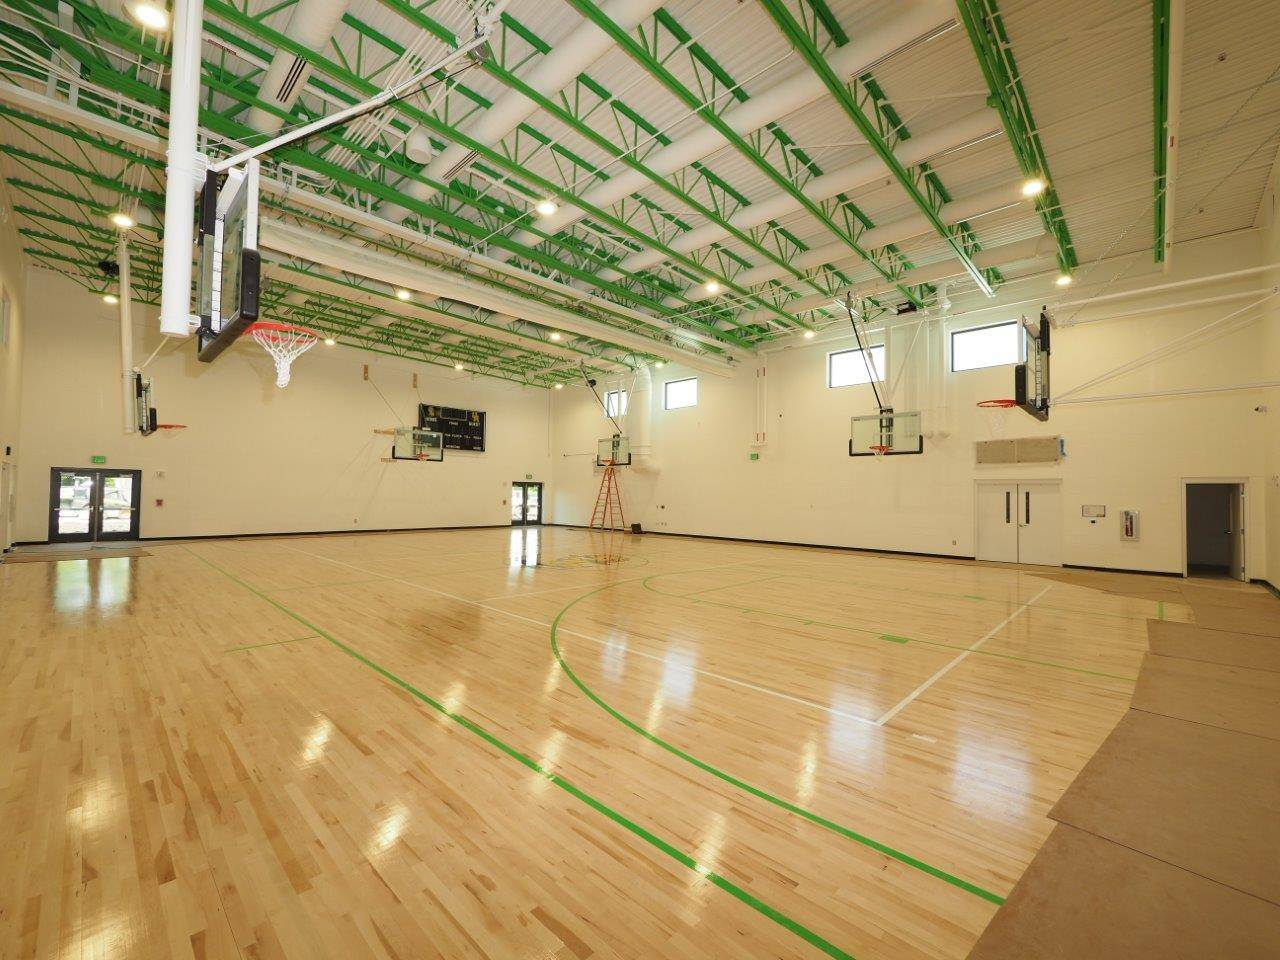 Inside the new Greensview Elementary School gymnasium